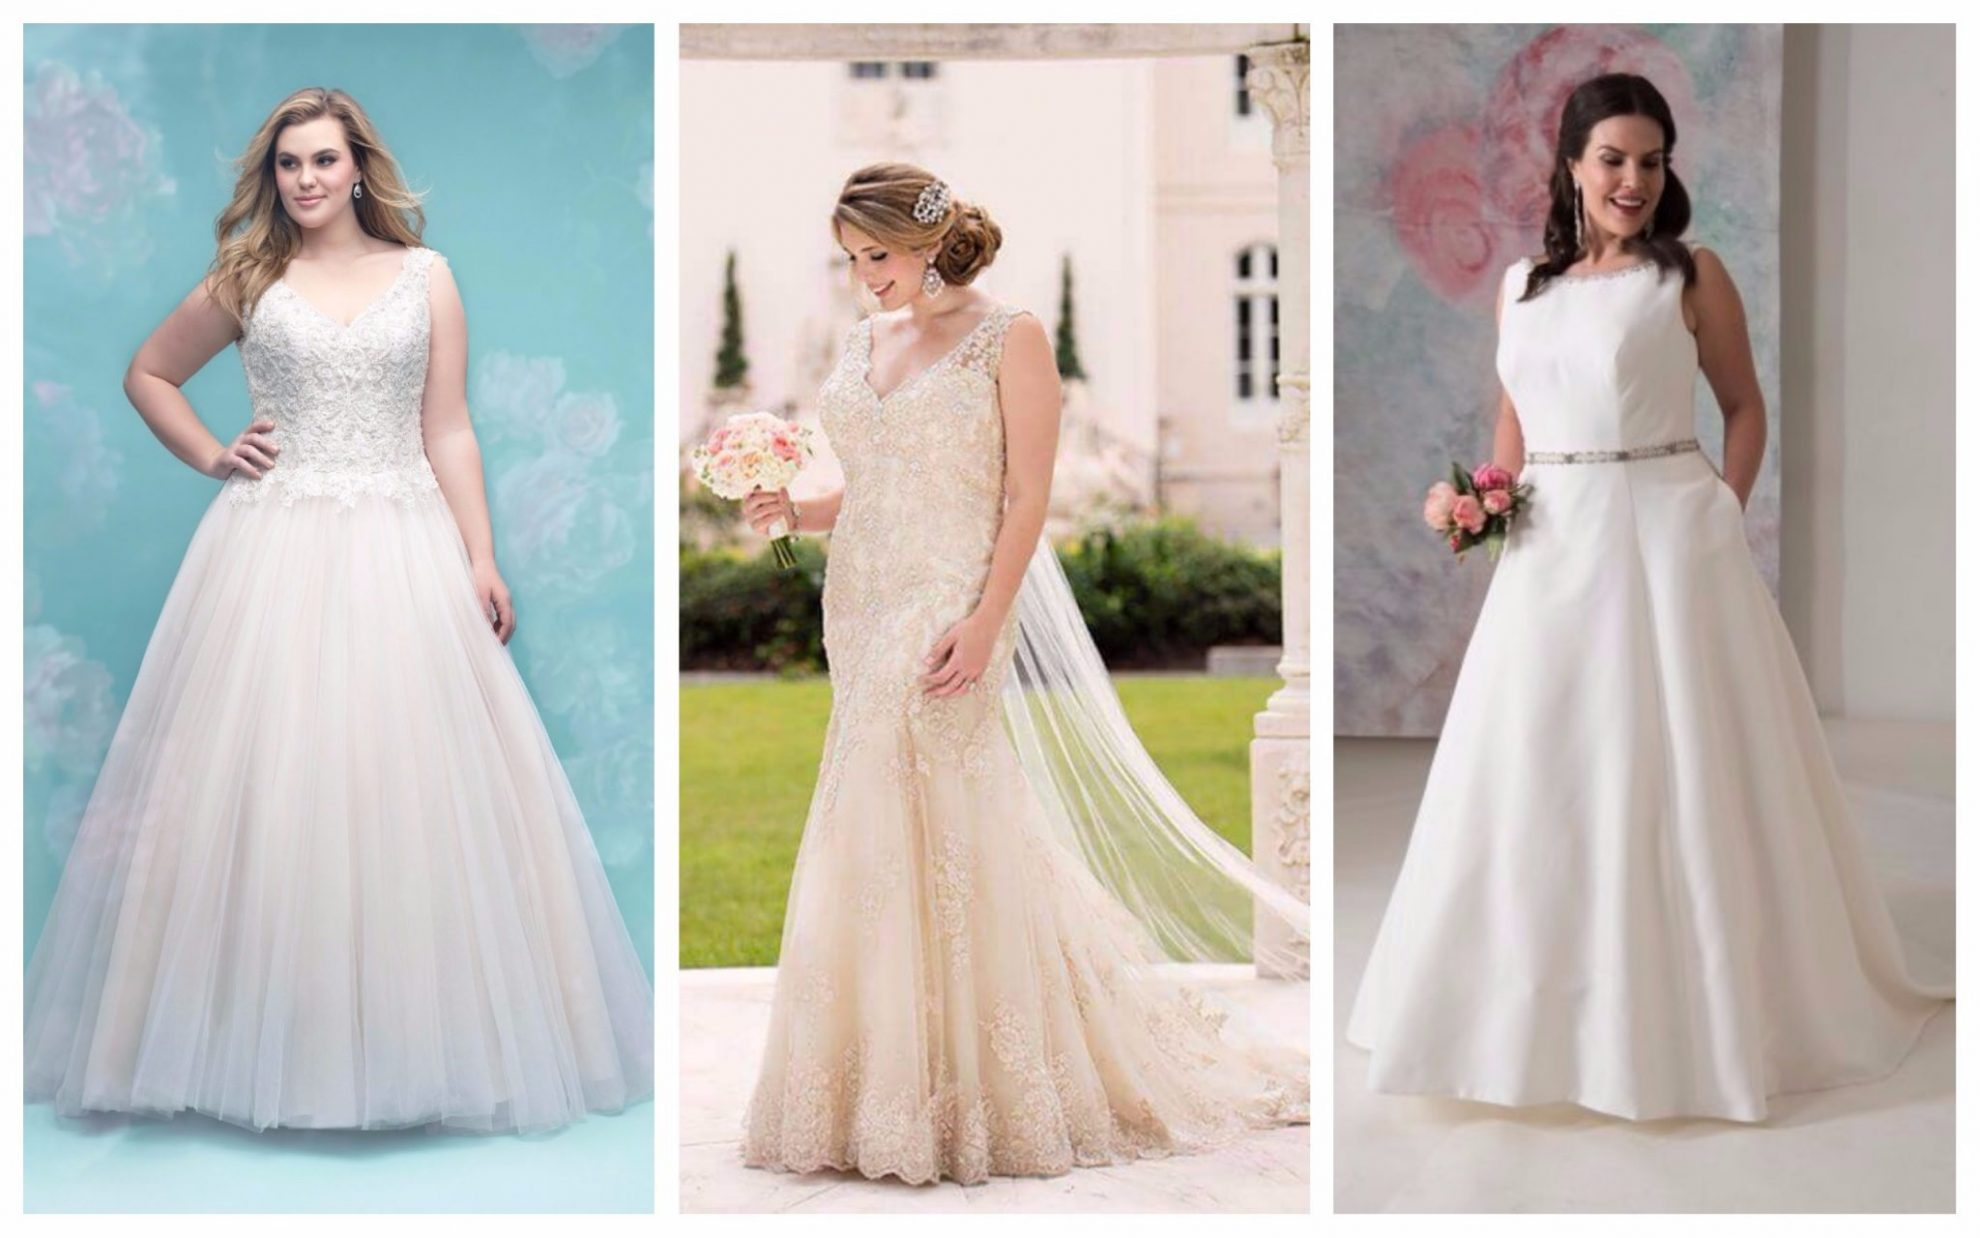 49b506f199be4 Flattering Tips For The Plus Size Bride